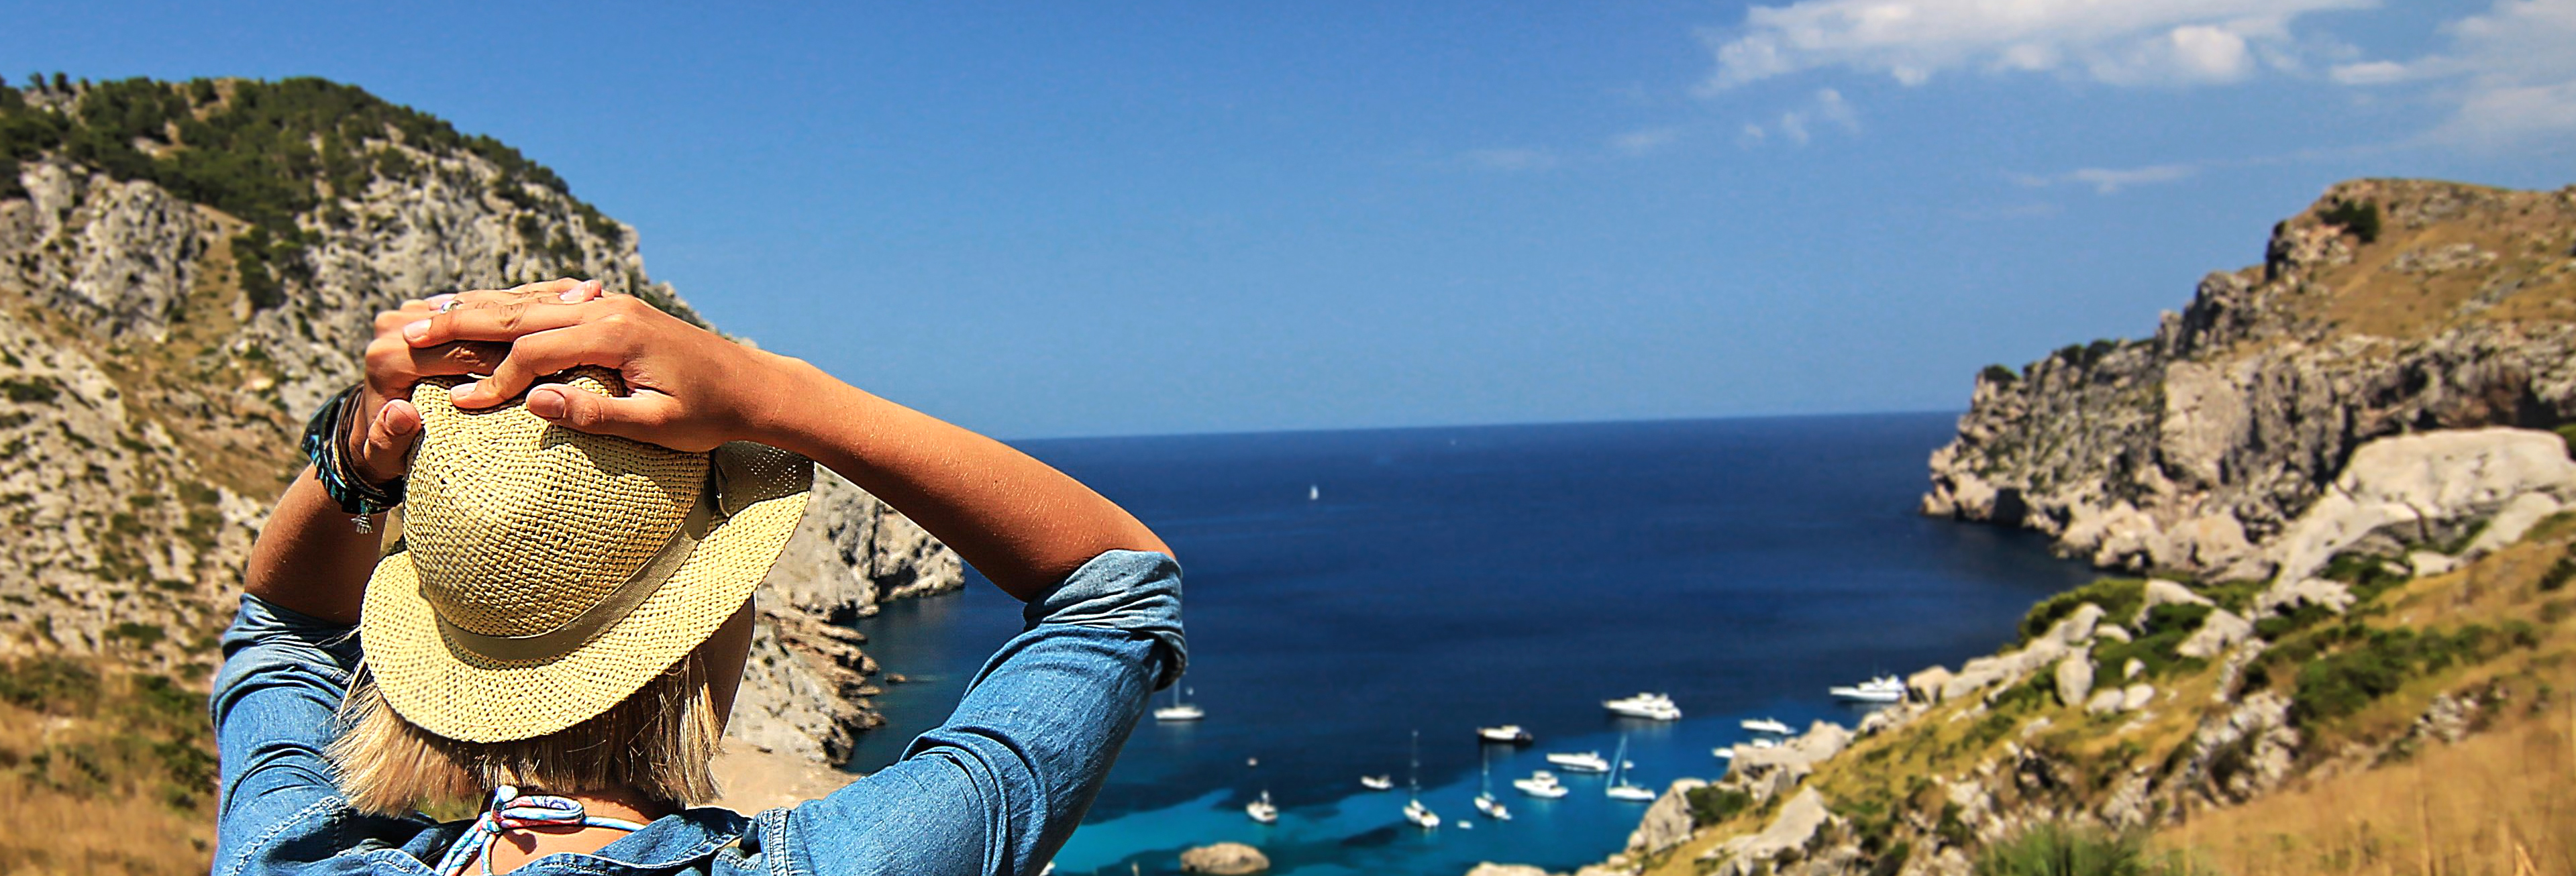 Residence Permit in Greece